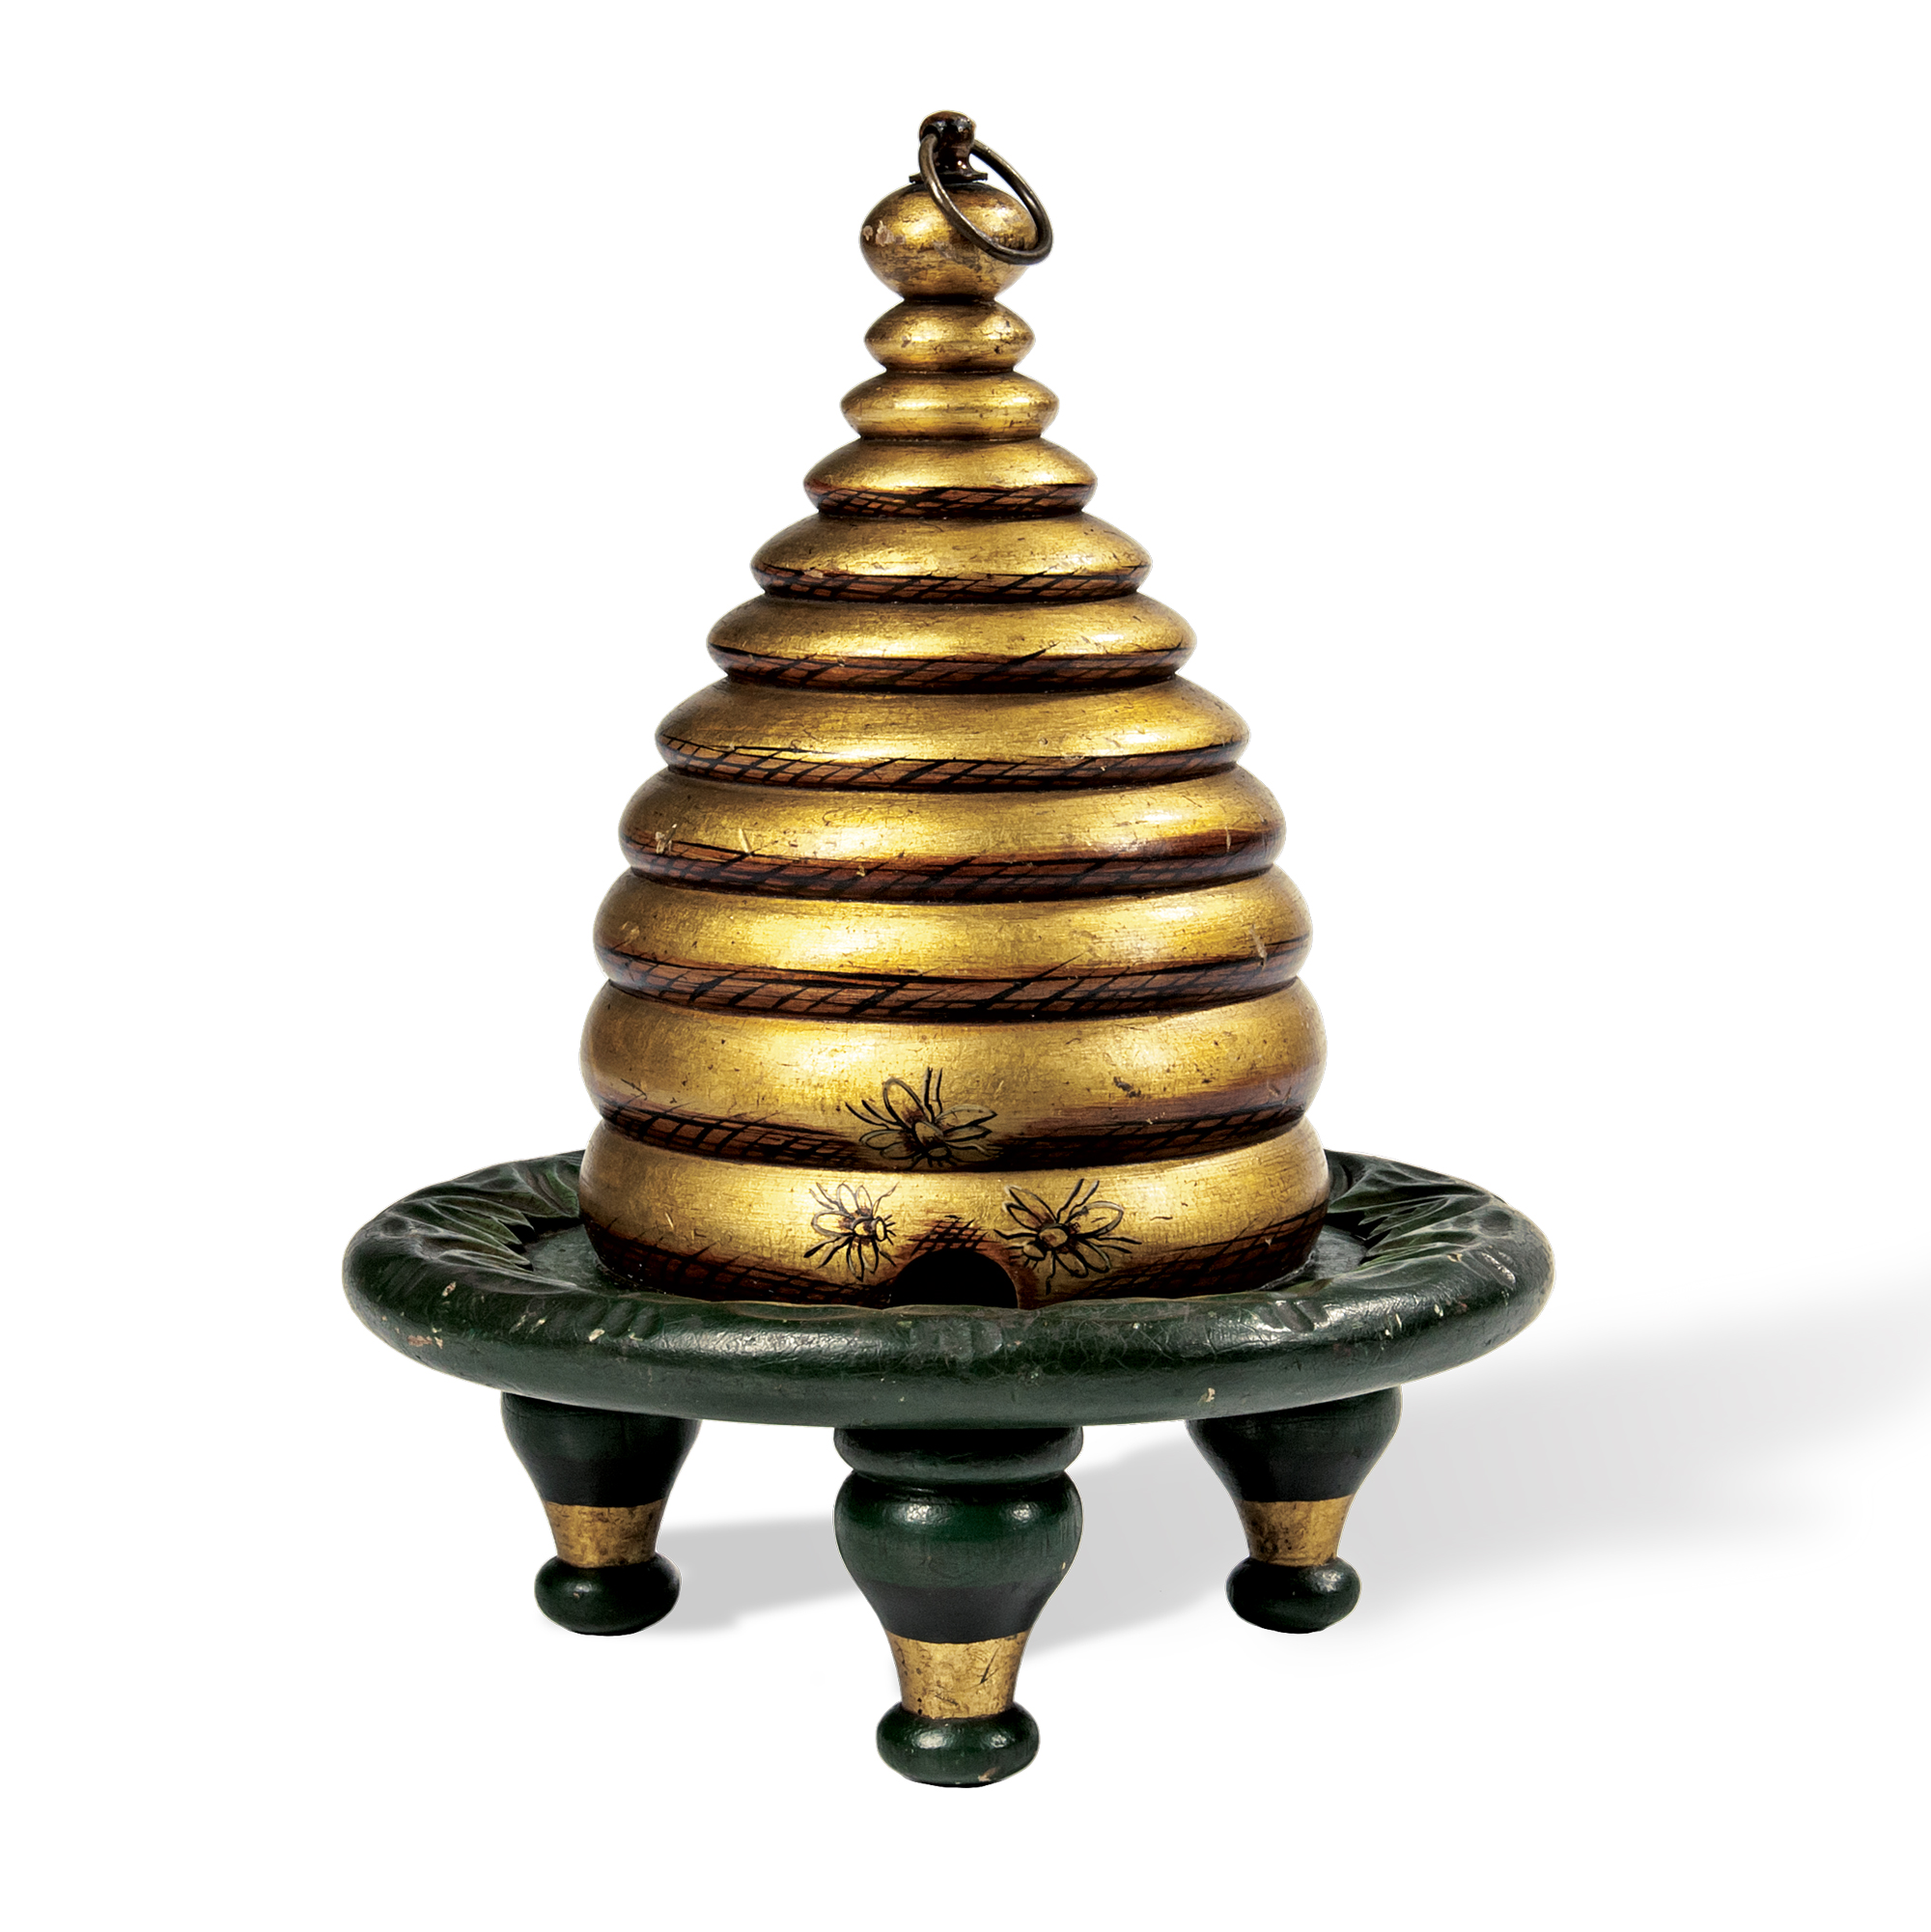 Gold- and Green-painted Rebekah Beehive (Lot 1818, Estimate: $800-1,200)